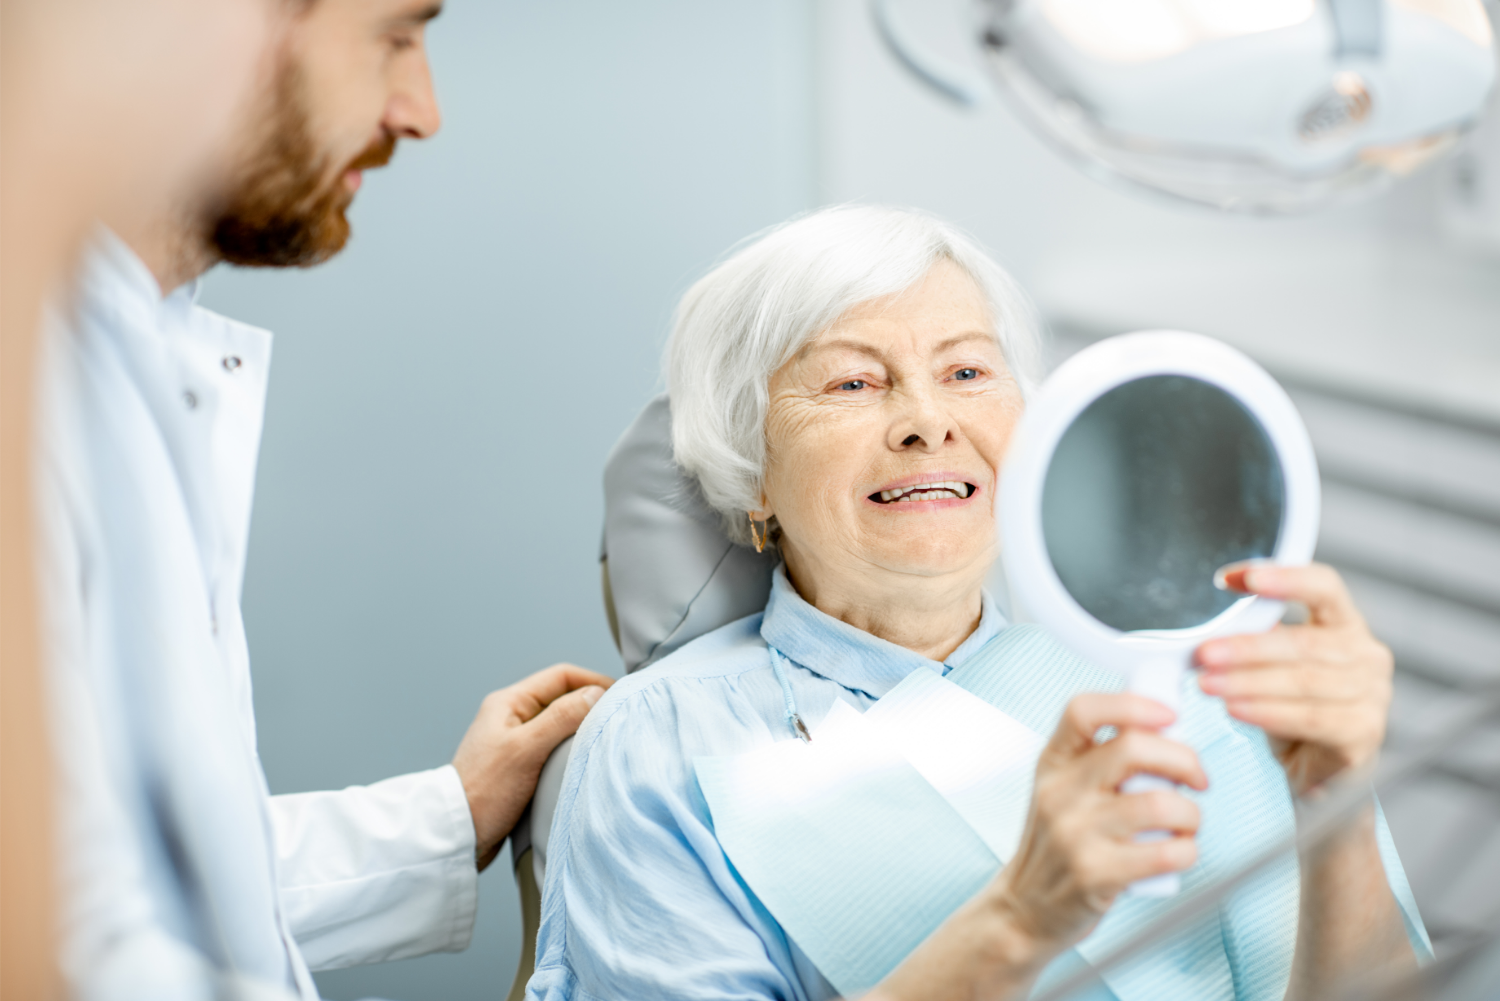 The Importance of Dental Care for Seniors